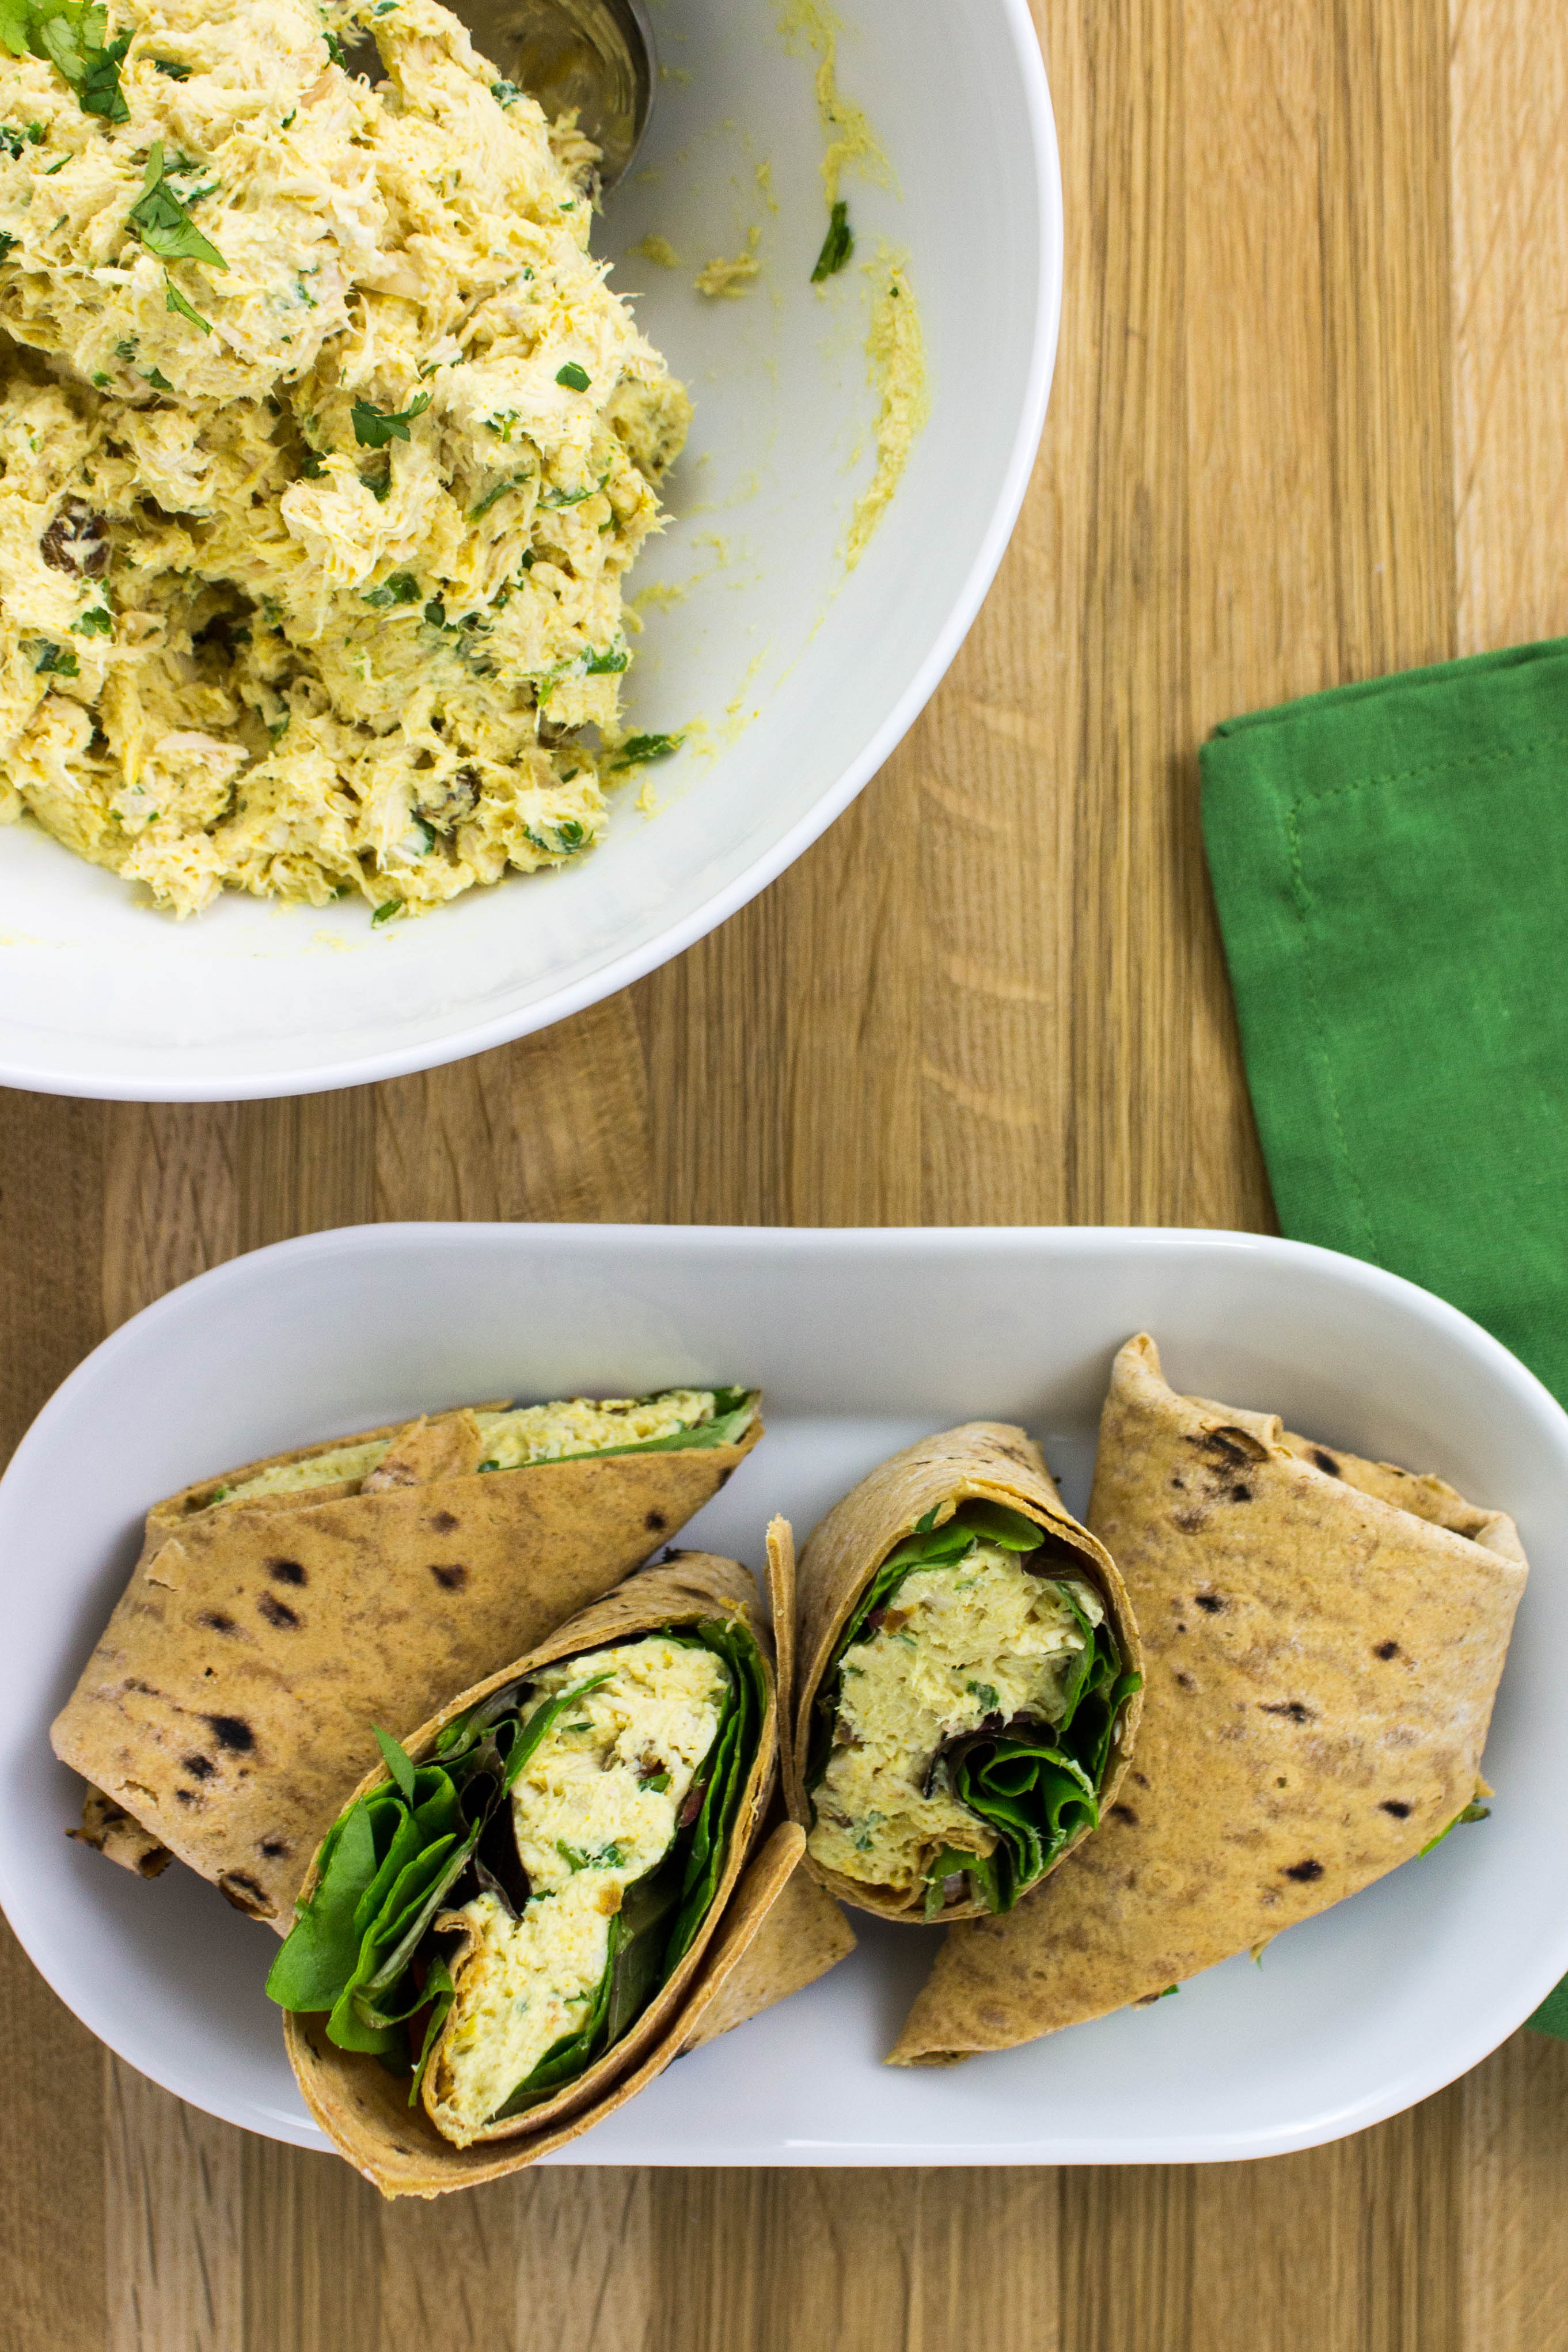 Curry Chicken Salad Wrap is made with perfectly cooked shredded chicken mixed with a curry yogurt sauce, toasted almonds, & golden raisins wrapped in a wheat wrap make for a great lunch! Weight Watchers friendly recipe. www.bitesofflavor.com